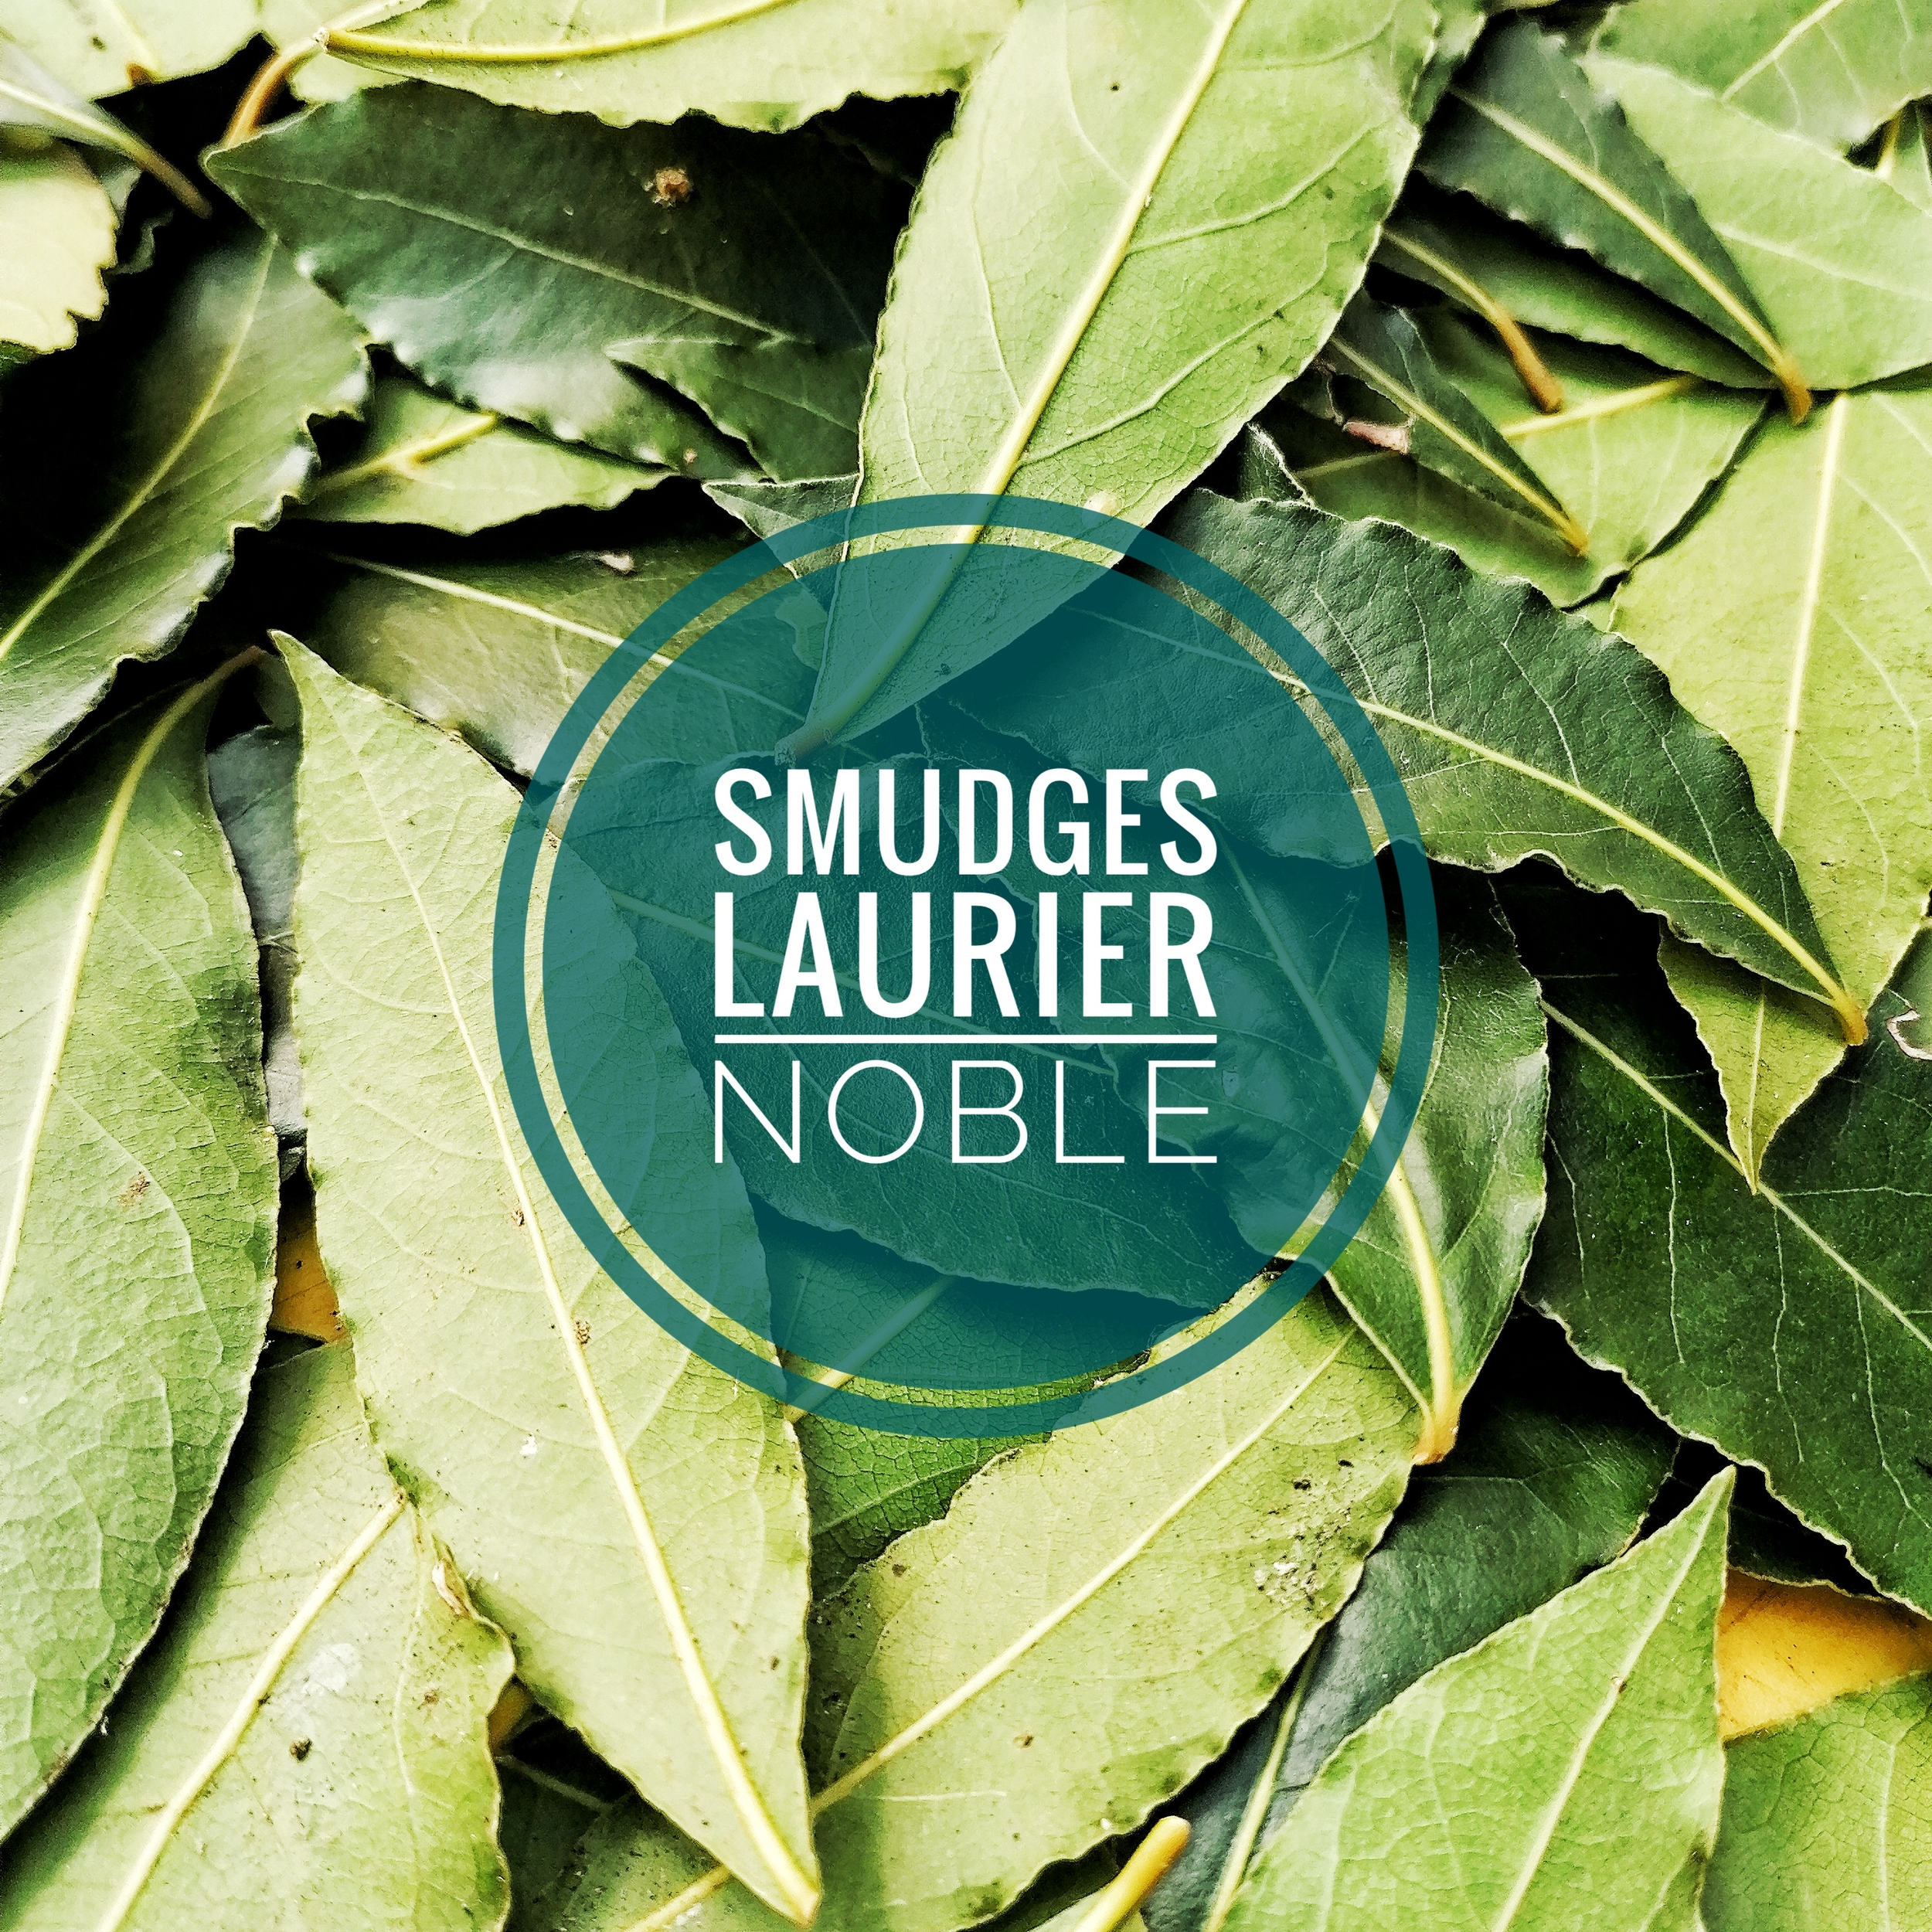 Mini Smudge Laurier noble - Sagesse Clairvoyance & Protection